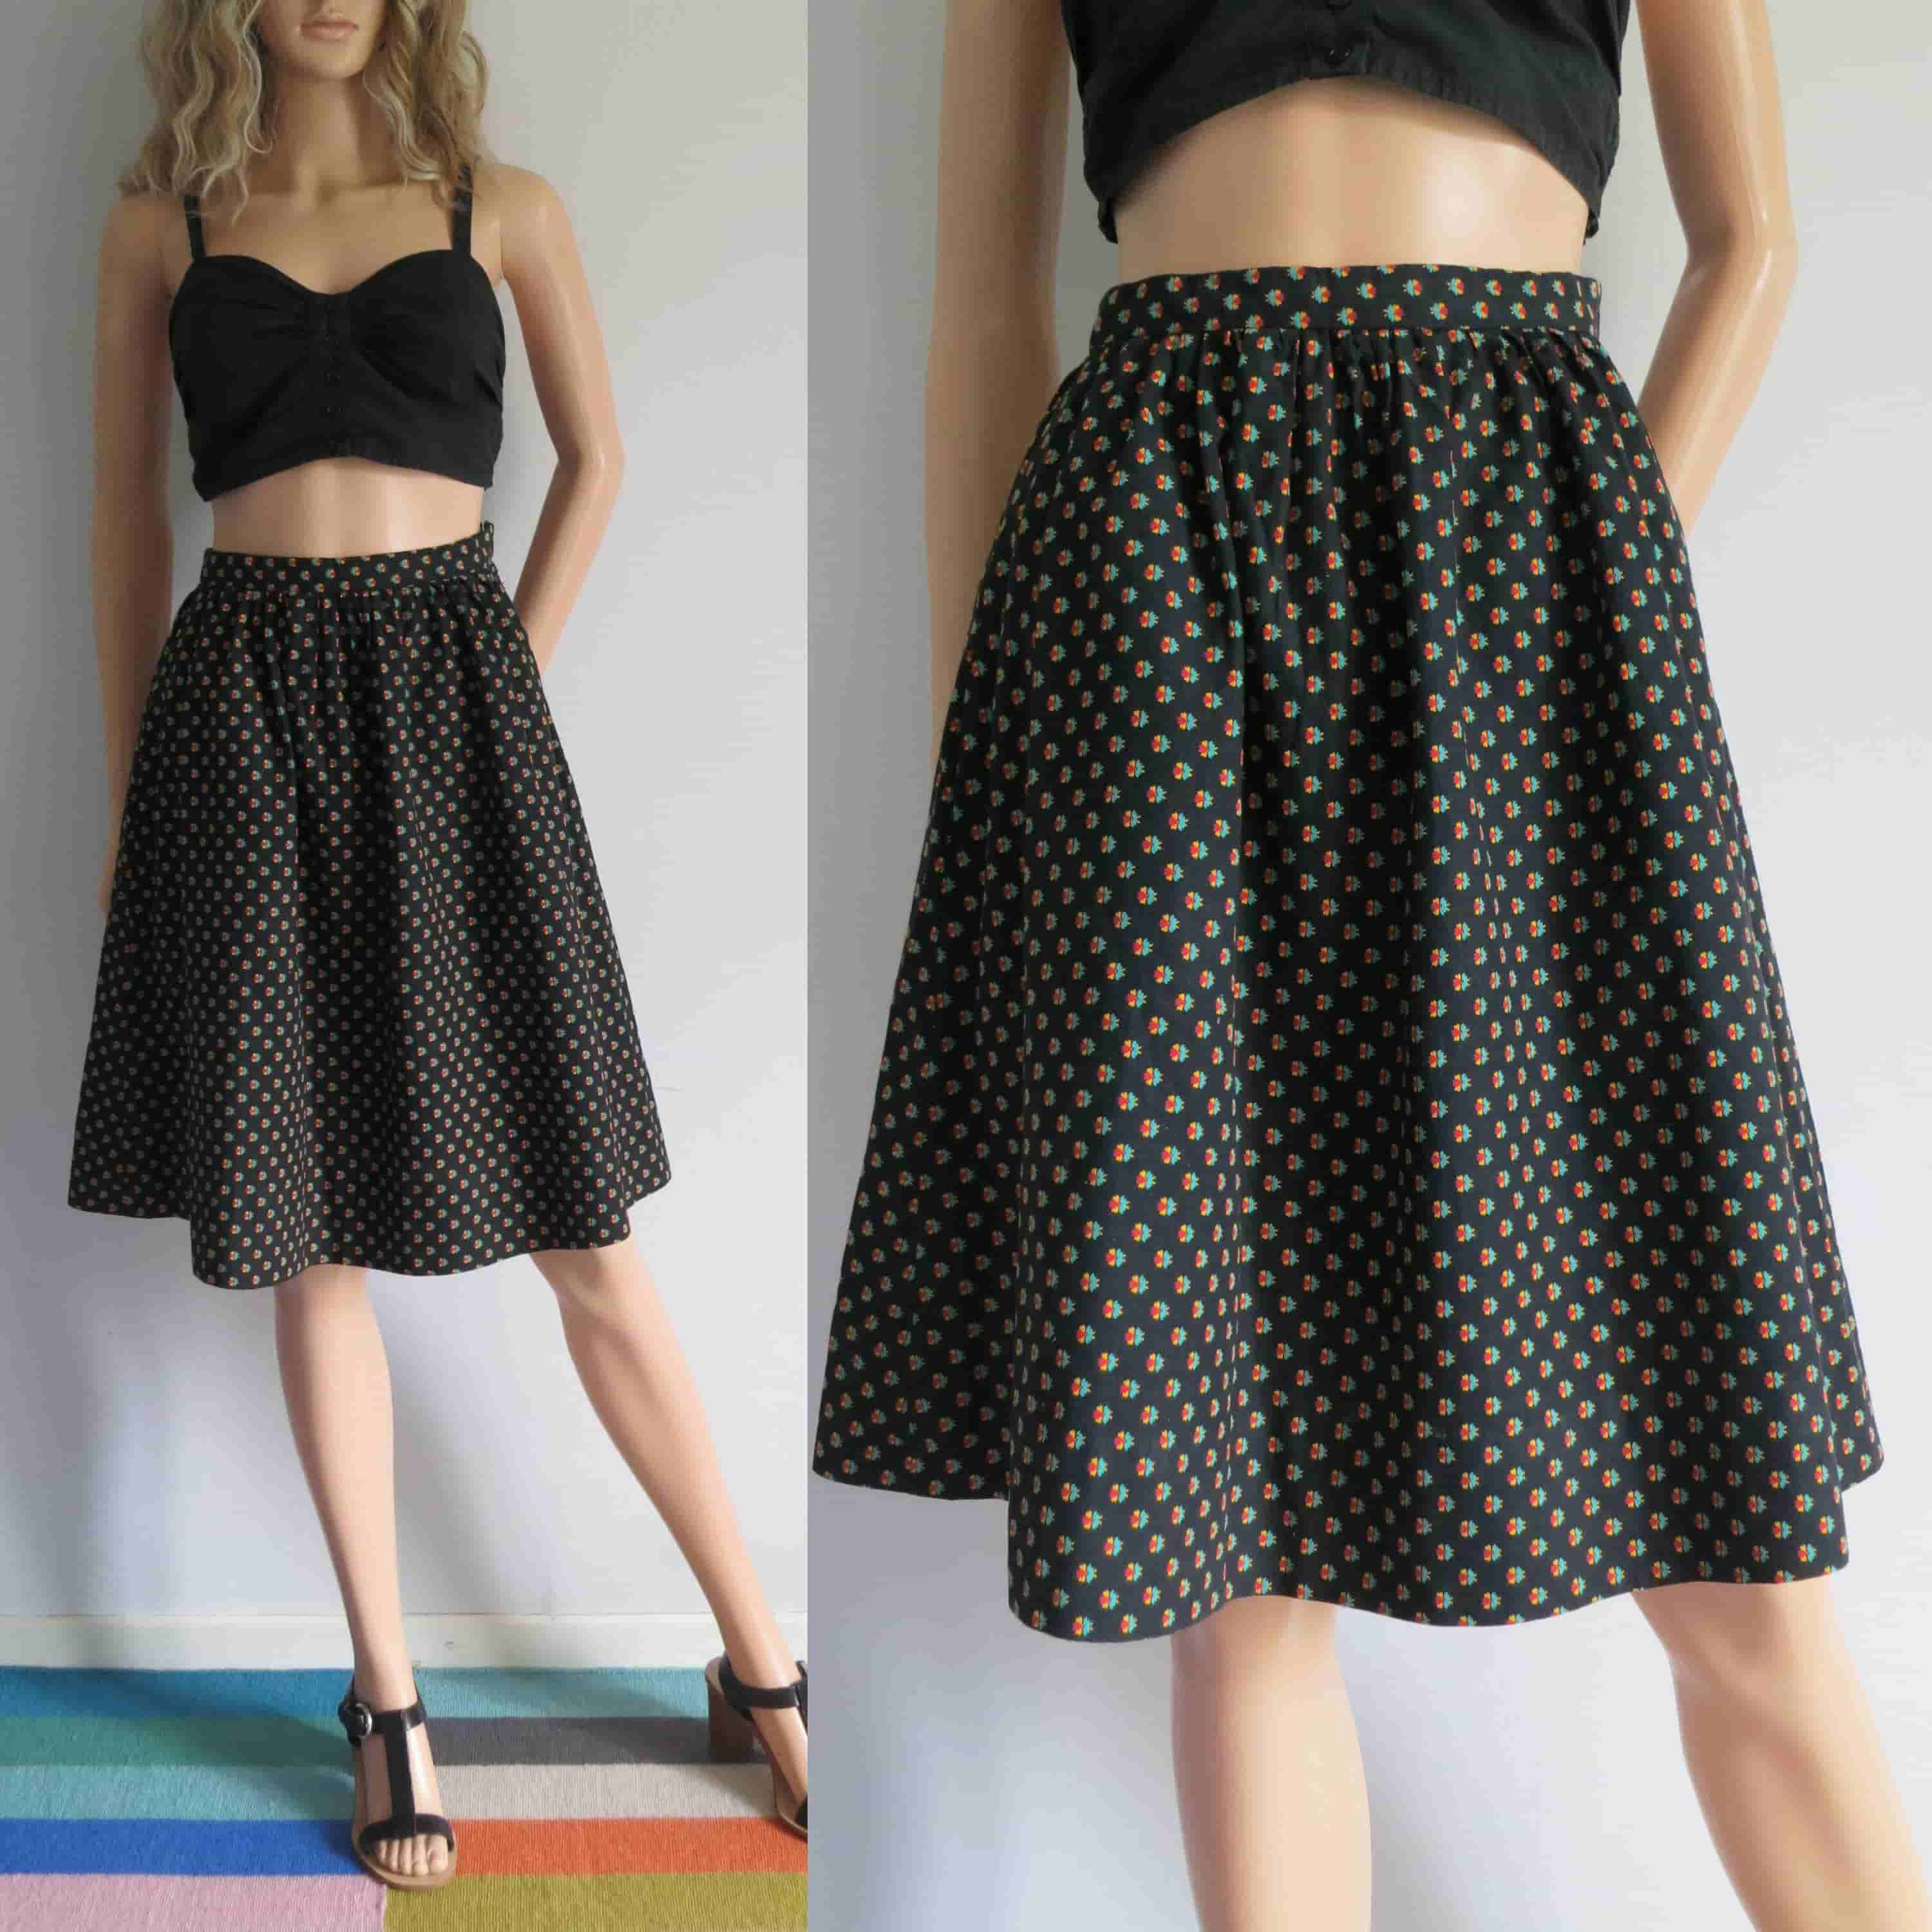 Cotton- Patterned skirt